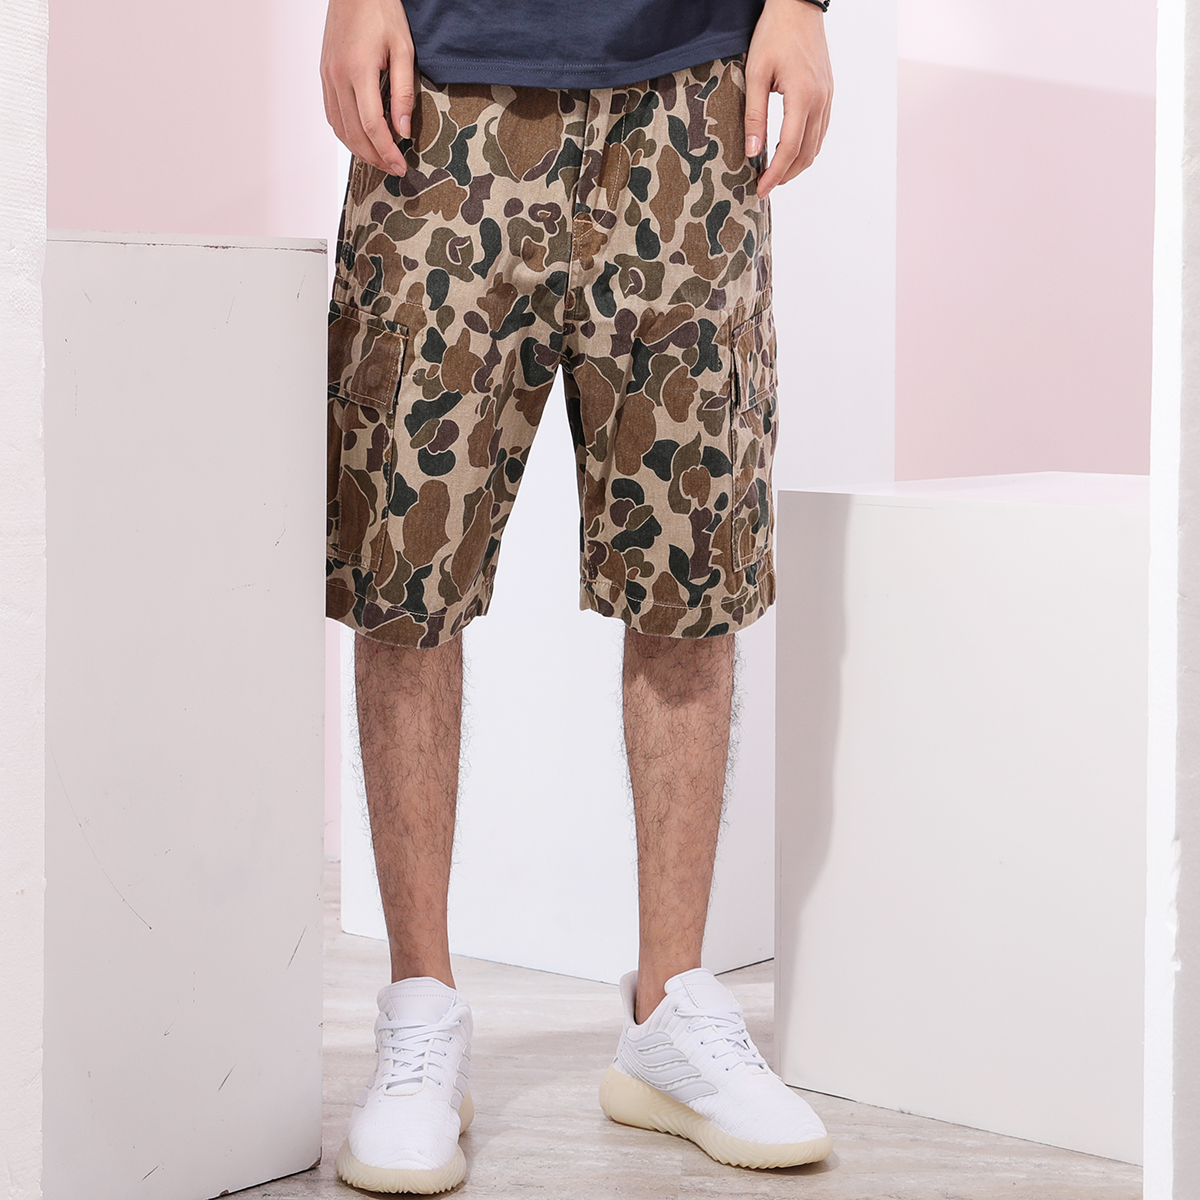 Youth student Khaki camouflage mens overalls mens shorts trendy mens casual pants pants pattern Capris